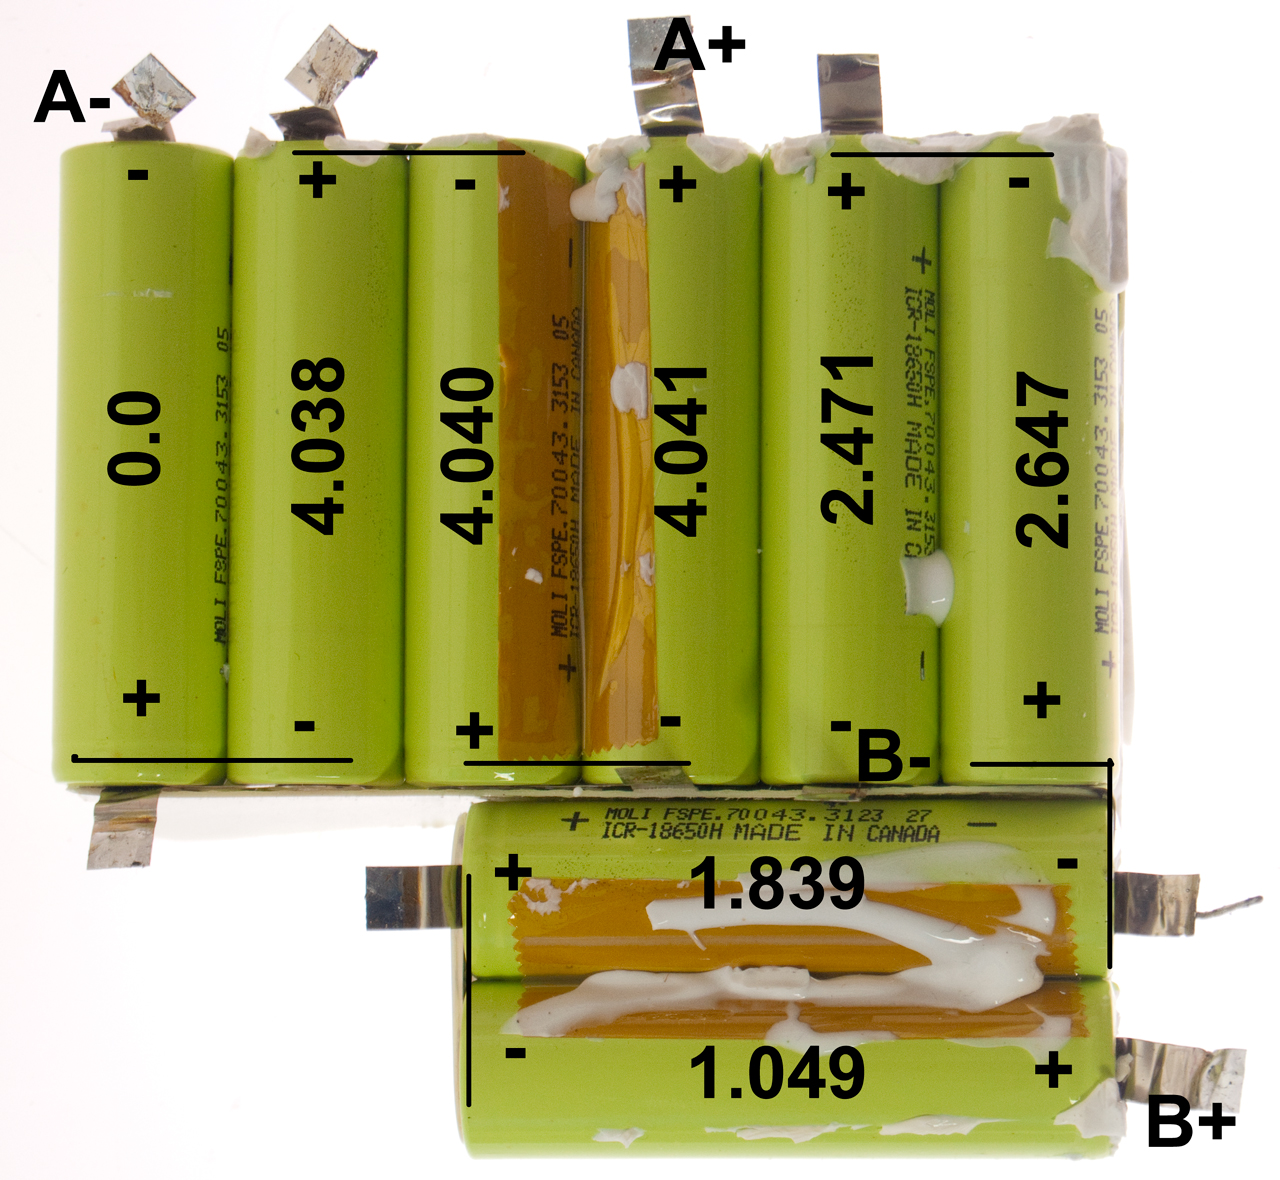 Ba 5590 U Hawker Powersource Battery Cell Diagram Bb 2590 Pack Removed With Voltages